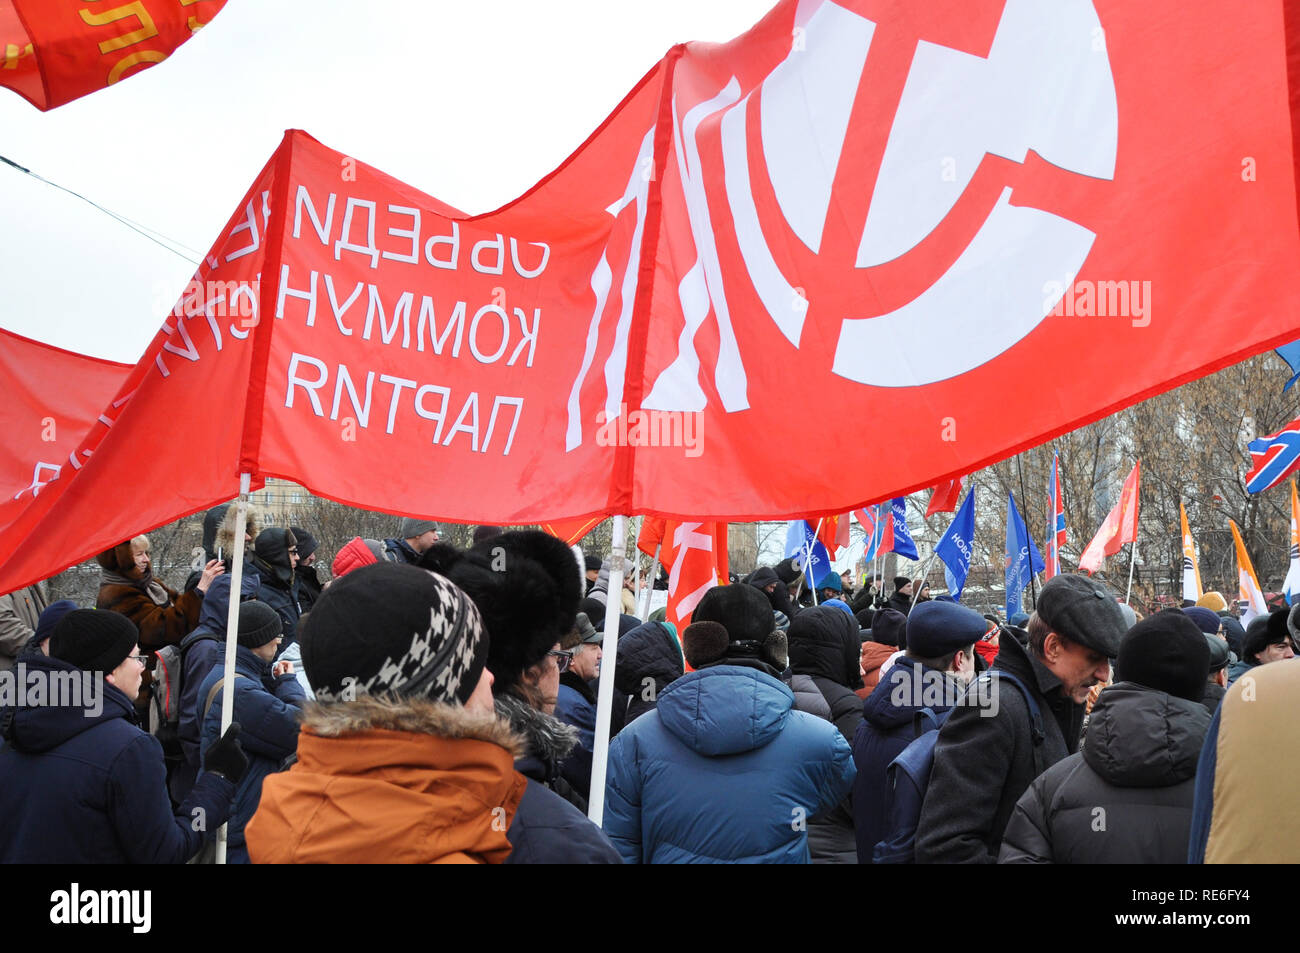 Moscow, Russia. 20th Jan, 2019. Hundreds from both left and right protest possible handover of contested Kuril islands (Northern territories) to Japan at a rally in central Moscow. Credit: Aleks Lokhmutov/Alamy Live News. - Stock Image